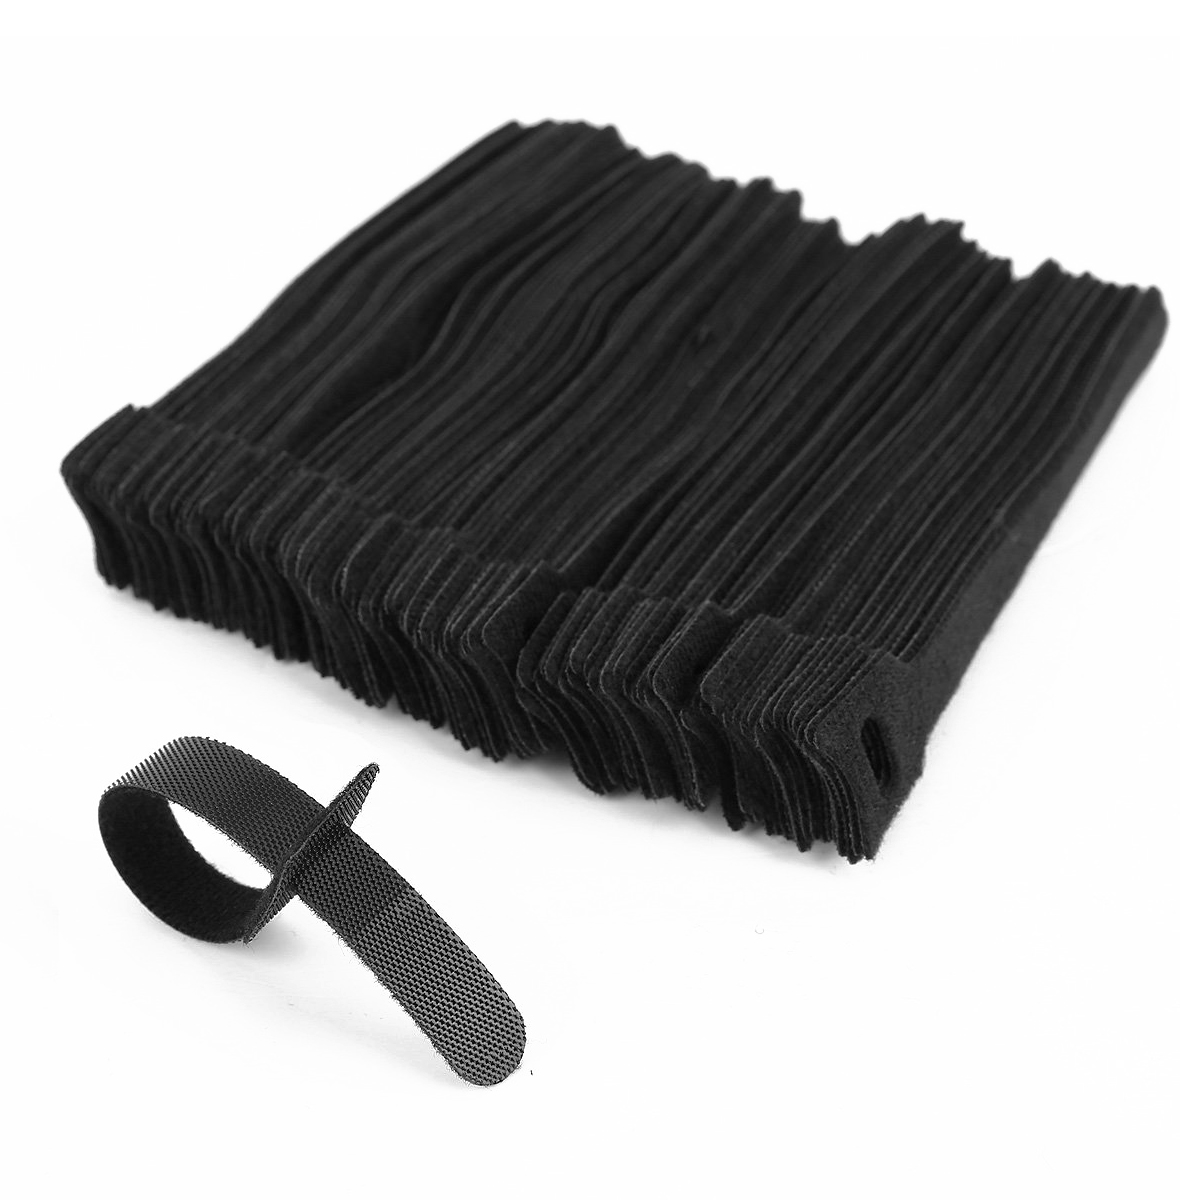 12*150 Mm 100 Pcs T-type Velcro Cable Tie Wire Storage Cable Computer Data Cable Power Cable Tie Wire